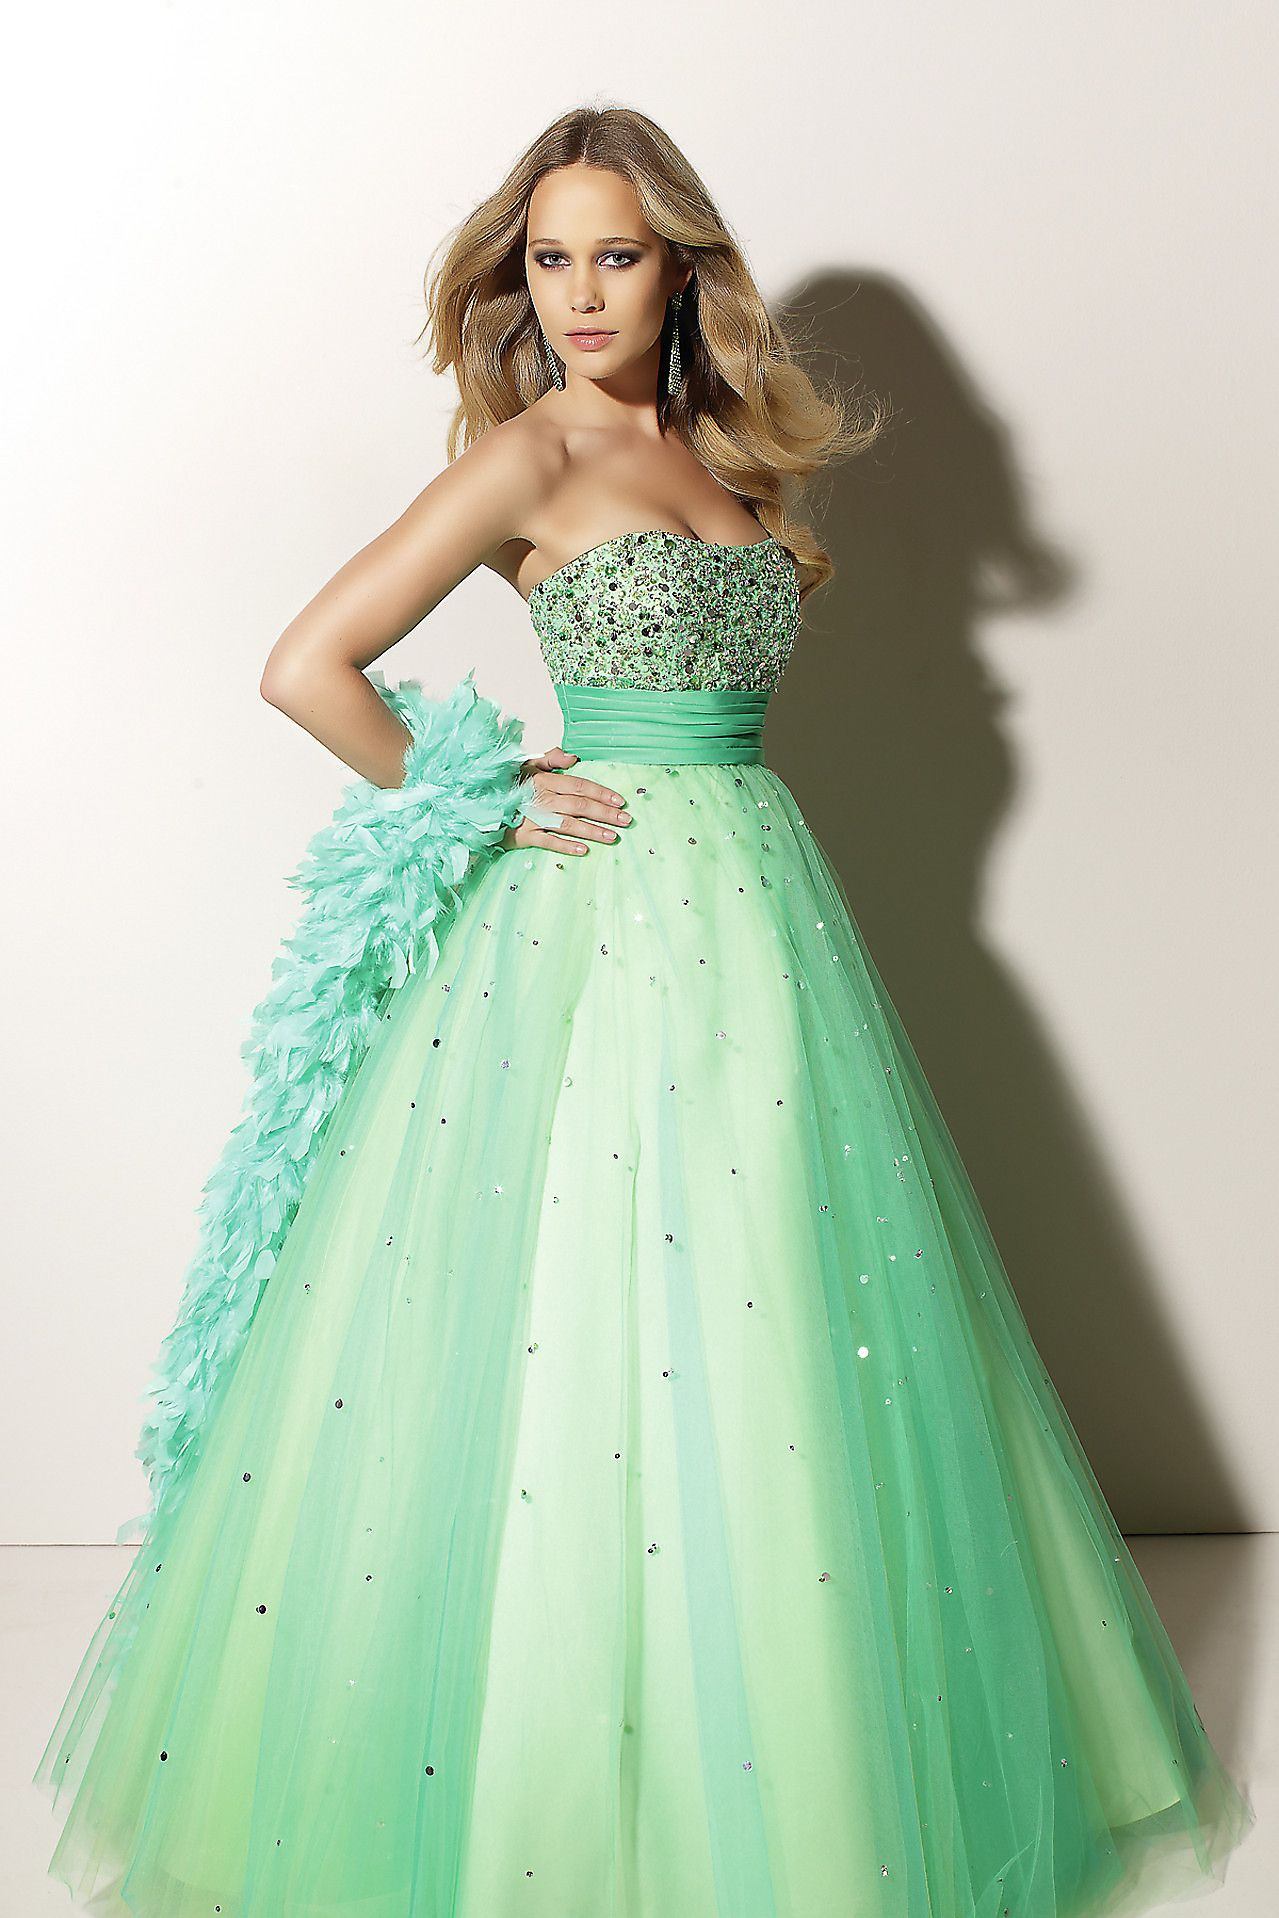 Home ue prom dresses not the scarf thing though but itus cute